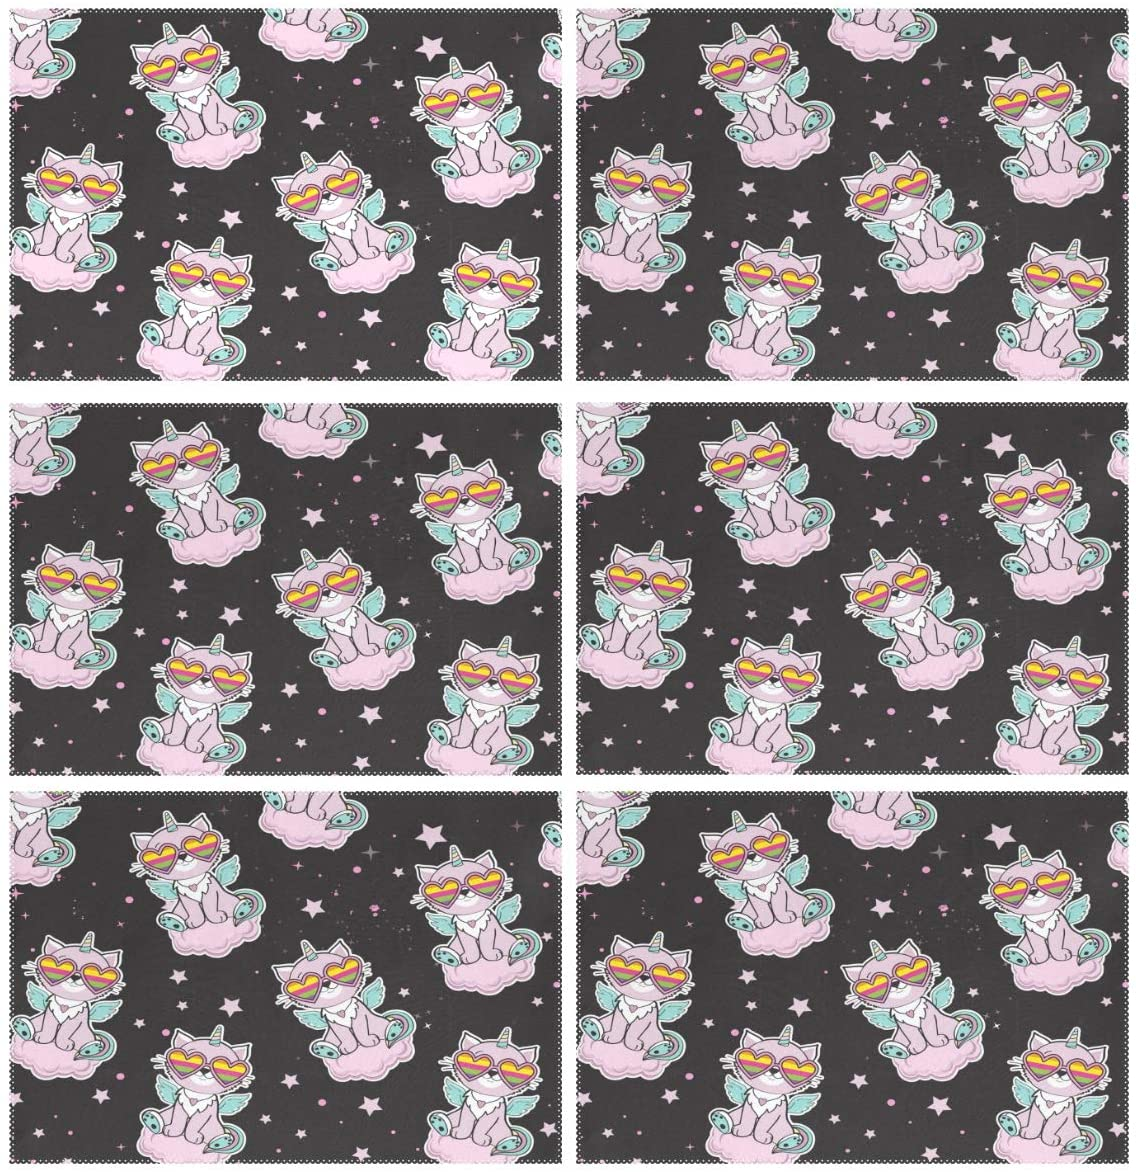 ALAZA Cat Unicorn Black Placemats Set of 6 for Kitchen Dinning Table Place Mat Heat Resistant Washable Polyester Plate Mat